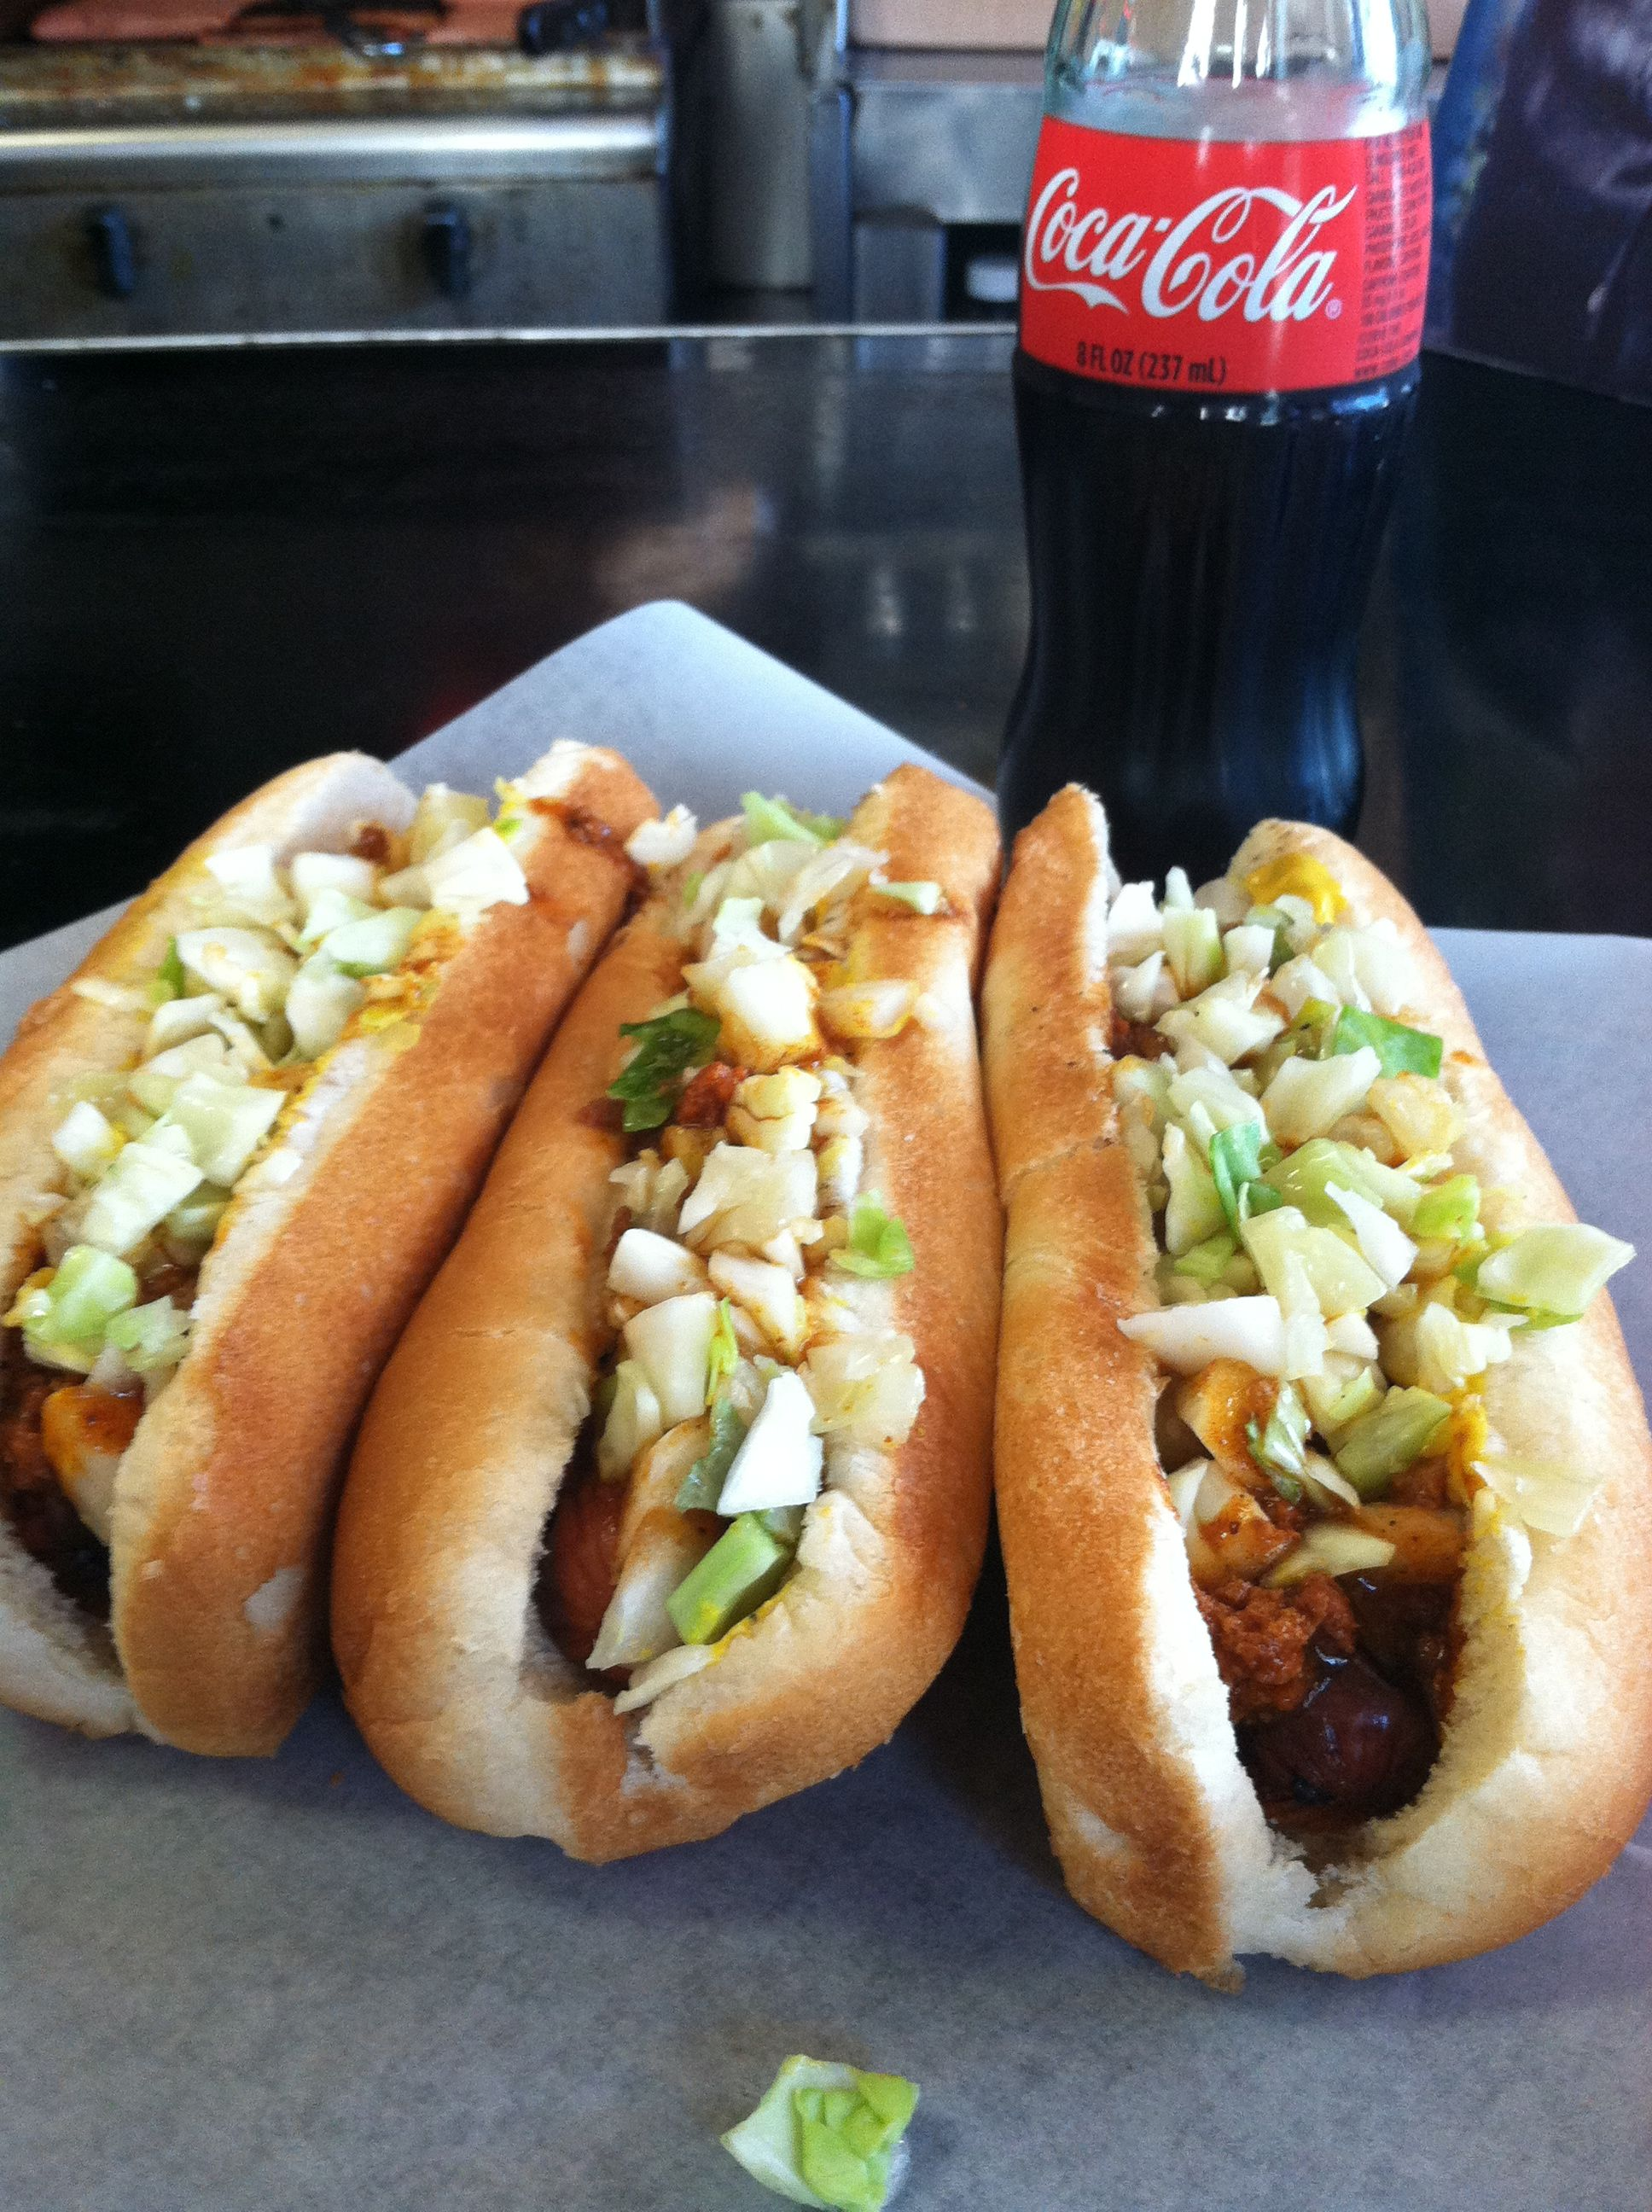 National Chili Dog Day called for a trip to Roast Grill in downtown Raleigh. No ketchup, no fries, no menu. Just great hot dogs and glass-bottled Cokes. And no mayo in the slaw!